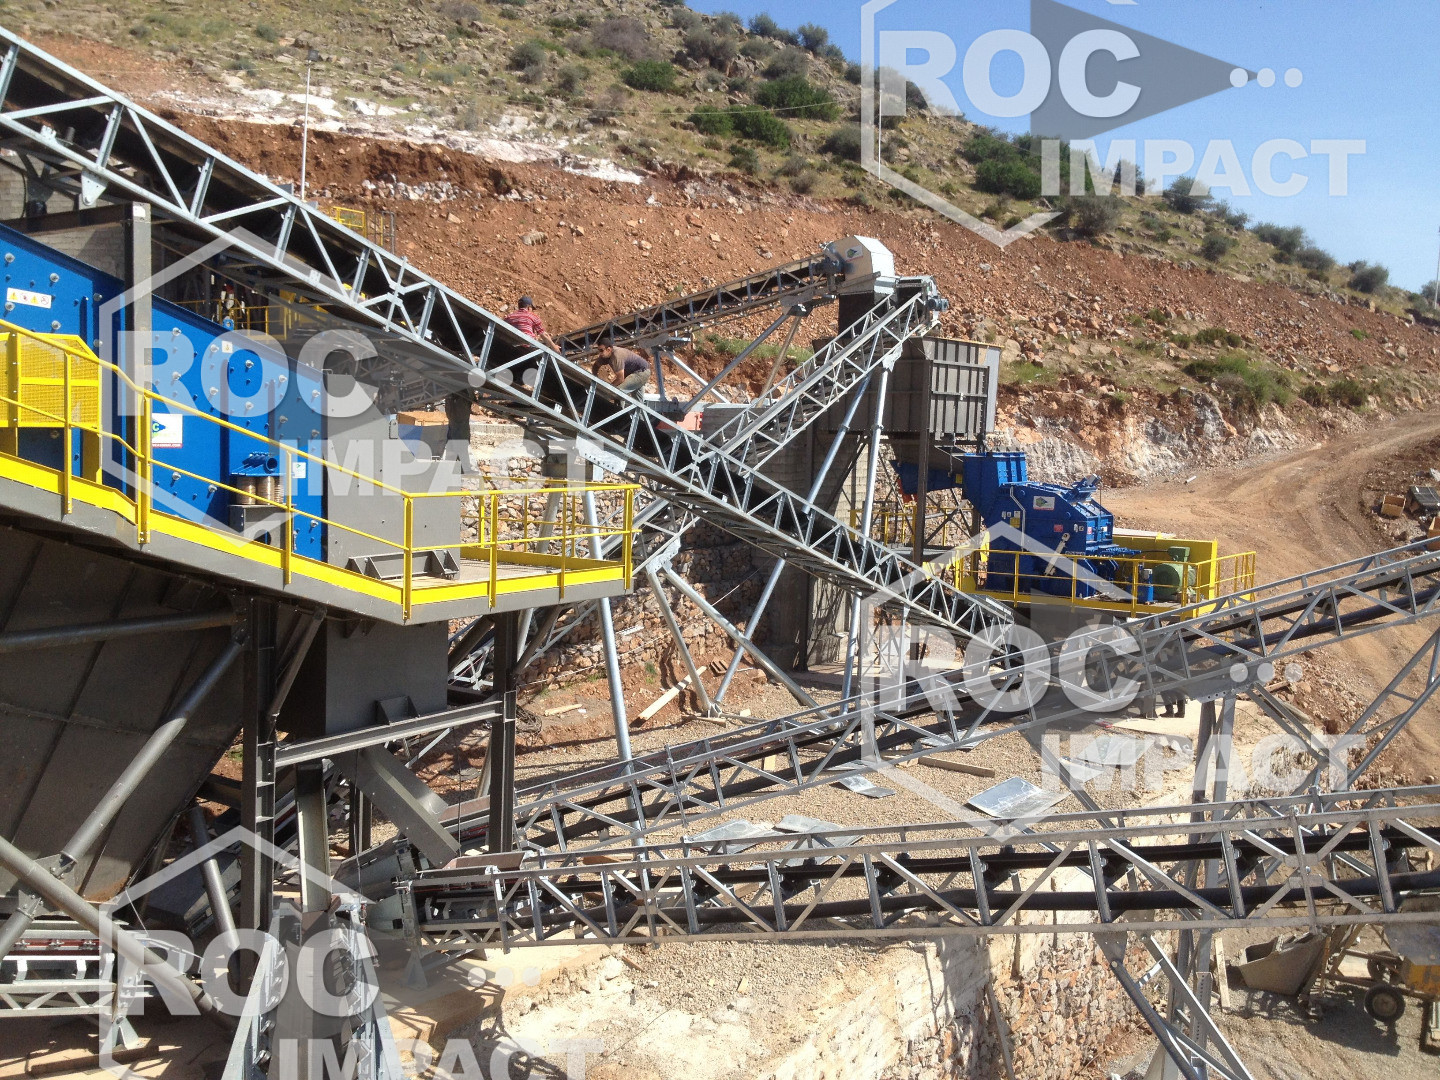 CRUSHING PLANT CAPACITY 300 T/H - 0/25 MM (DESTINATION ALGERIE)